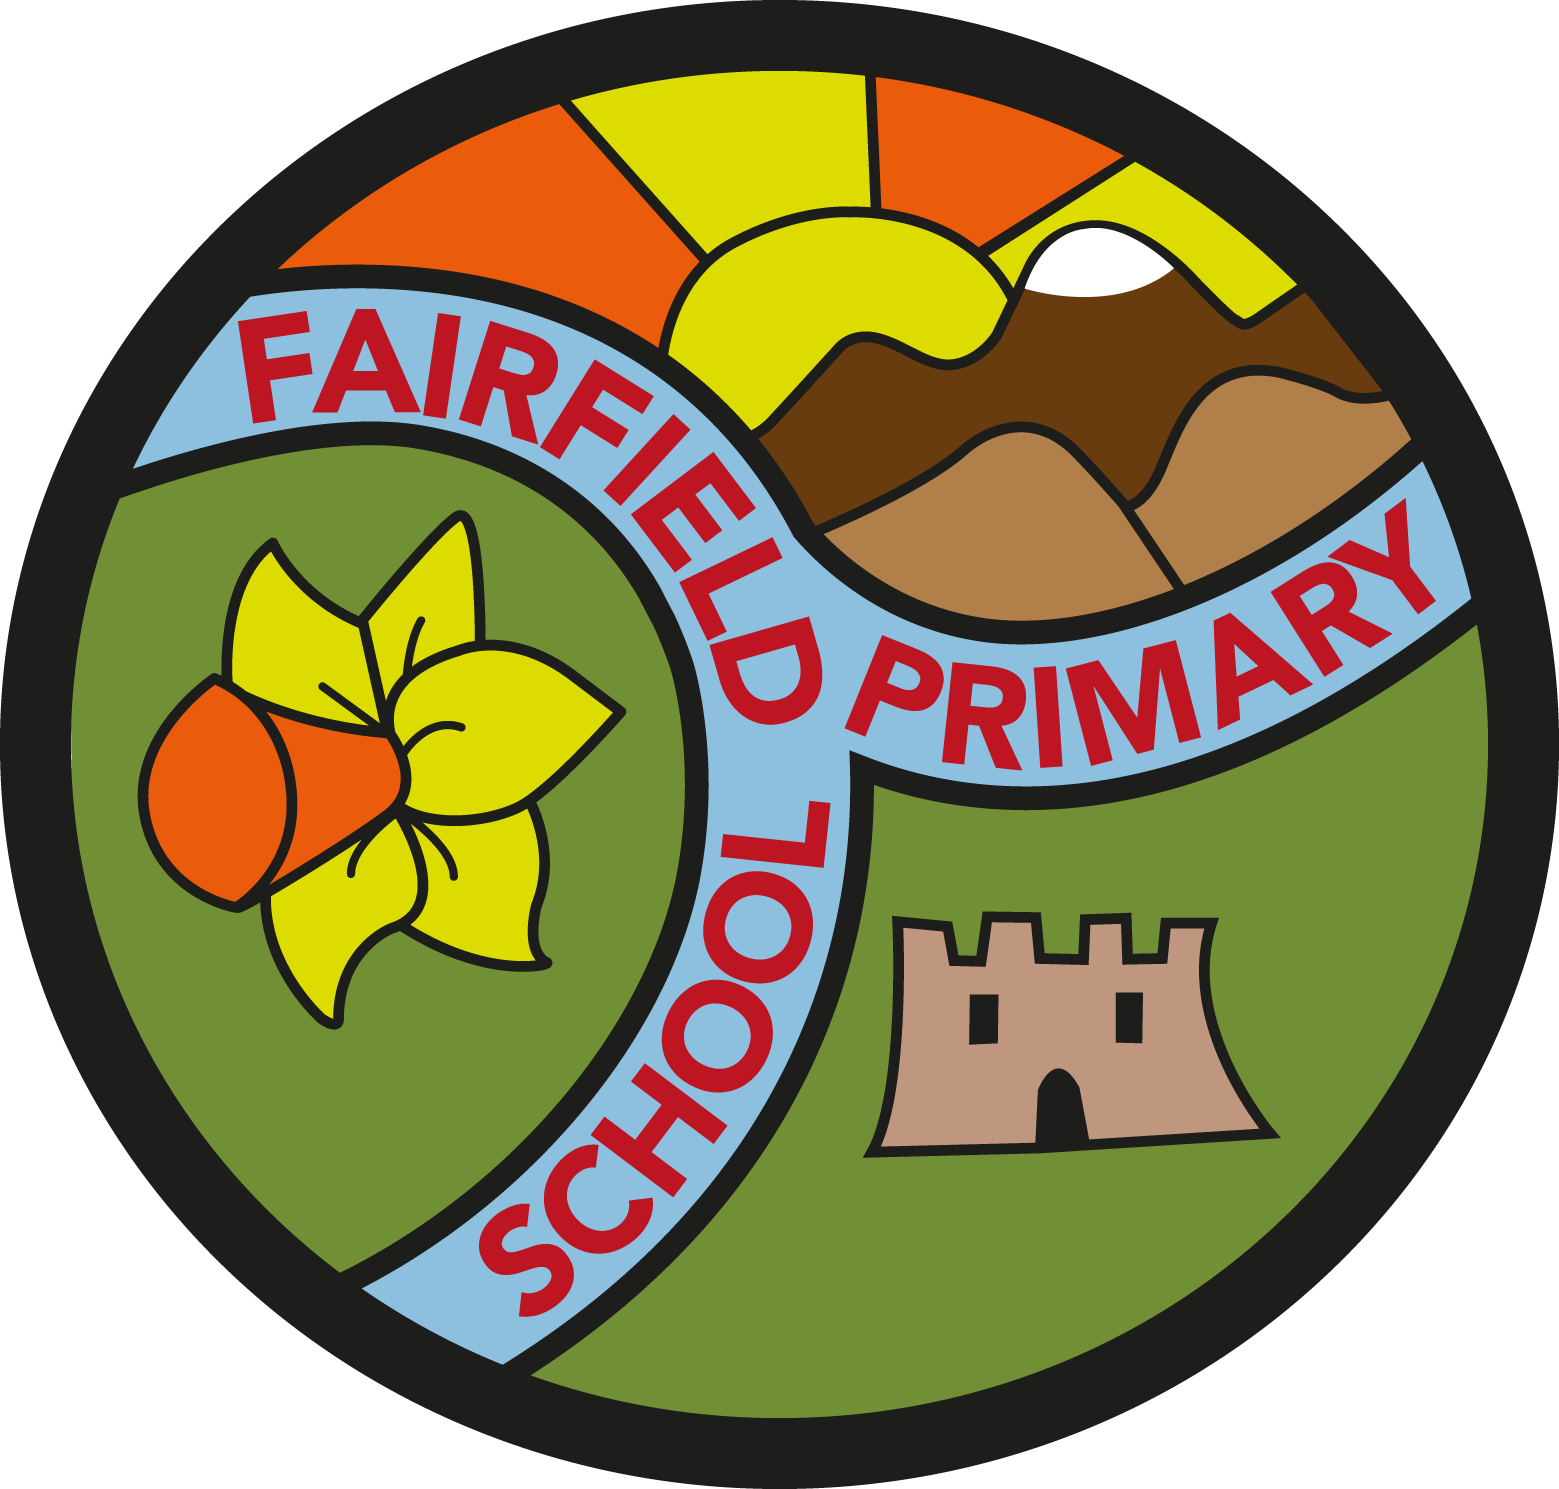 Fairfield Primary School